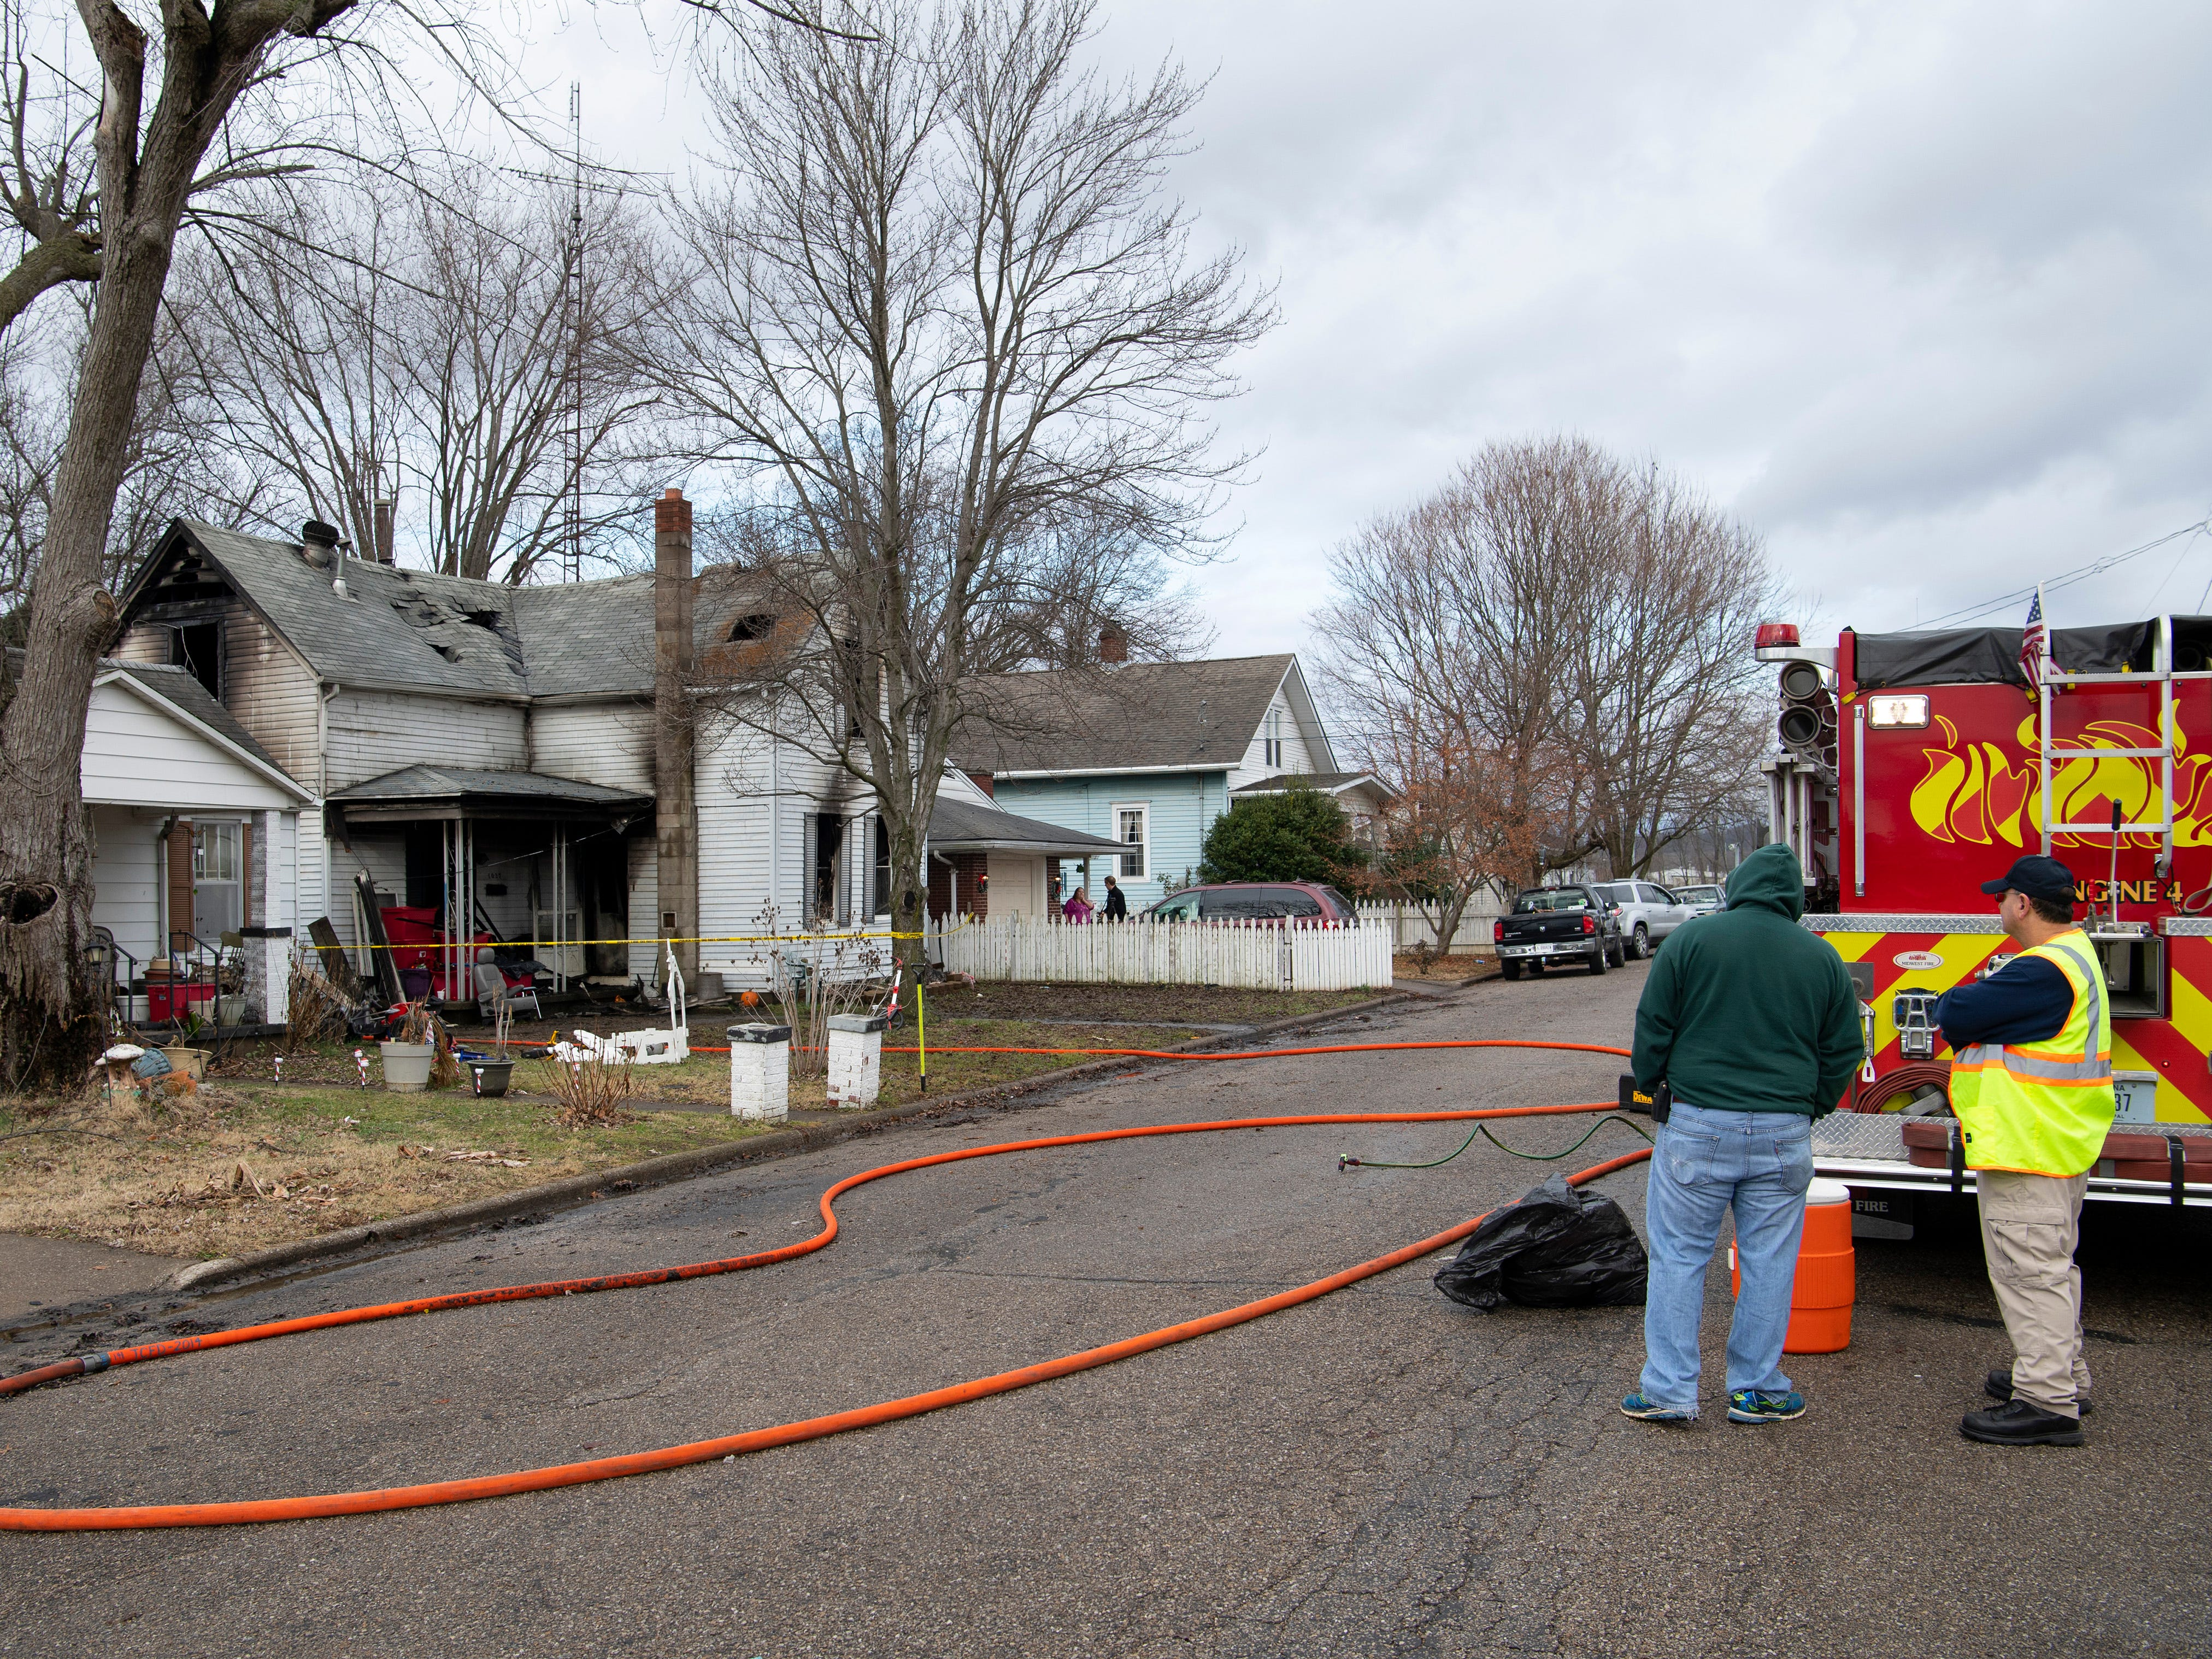 The investigation continues at a home at 1027 15th Street in Tell City, Ind., Friday morning. An early morning fire took the lives of three children in the home. Their mother and two other siblings escaped the blaze with non life-threatening injuries.